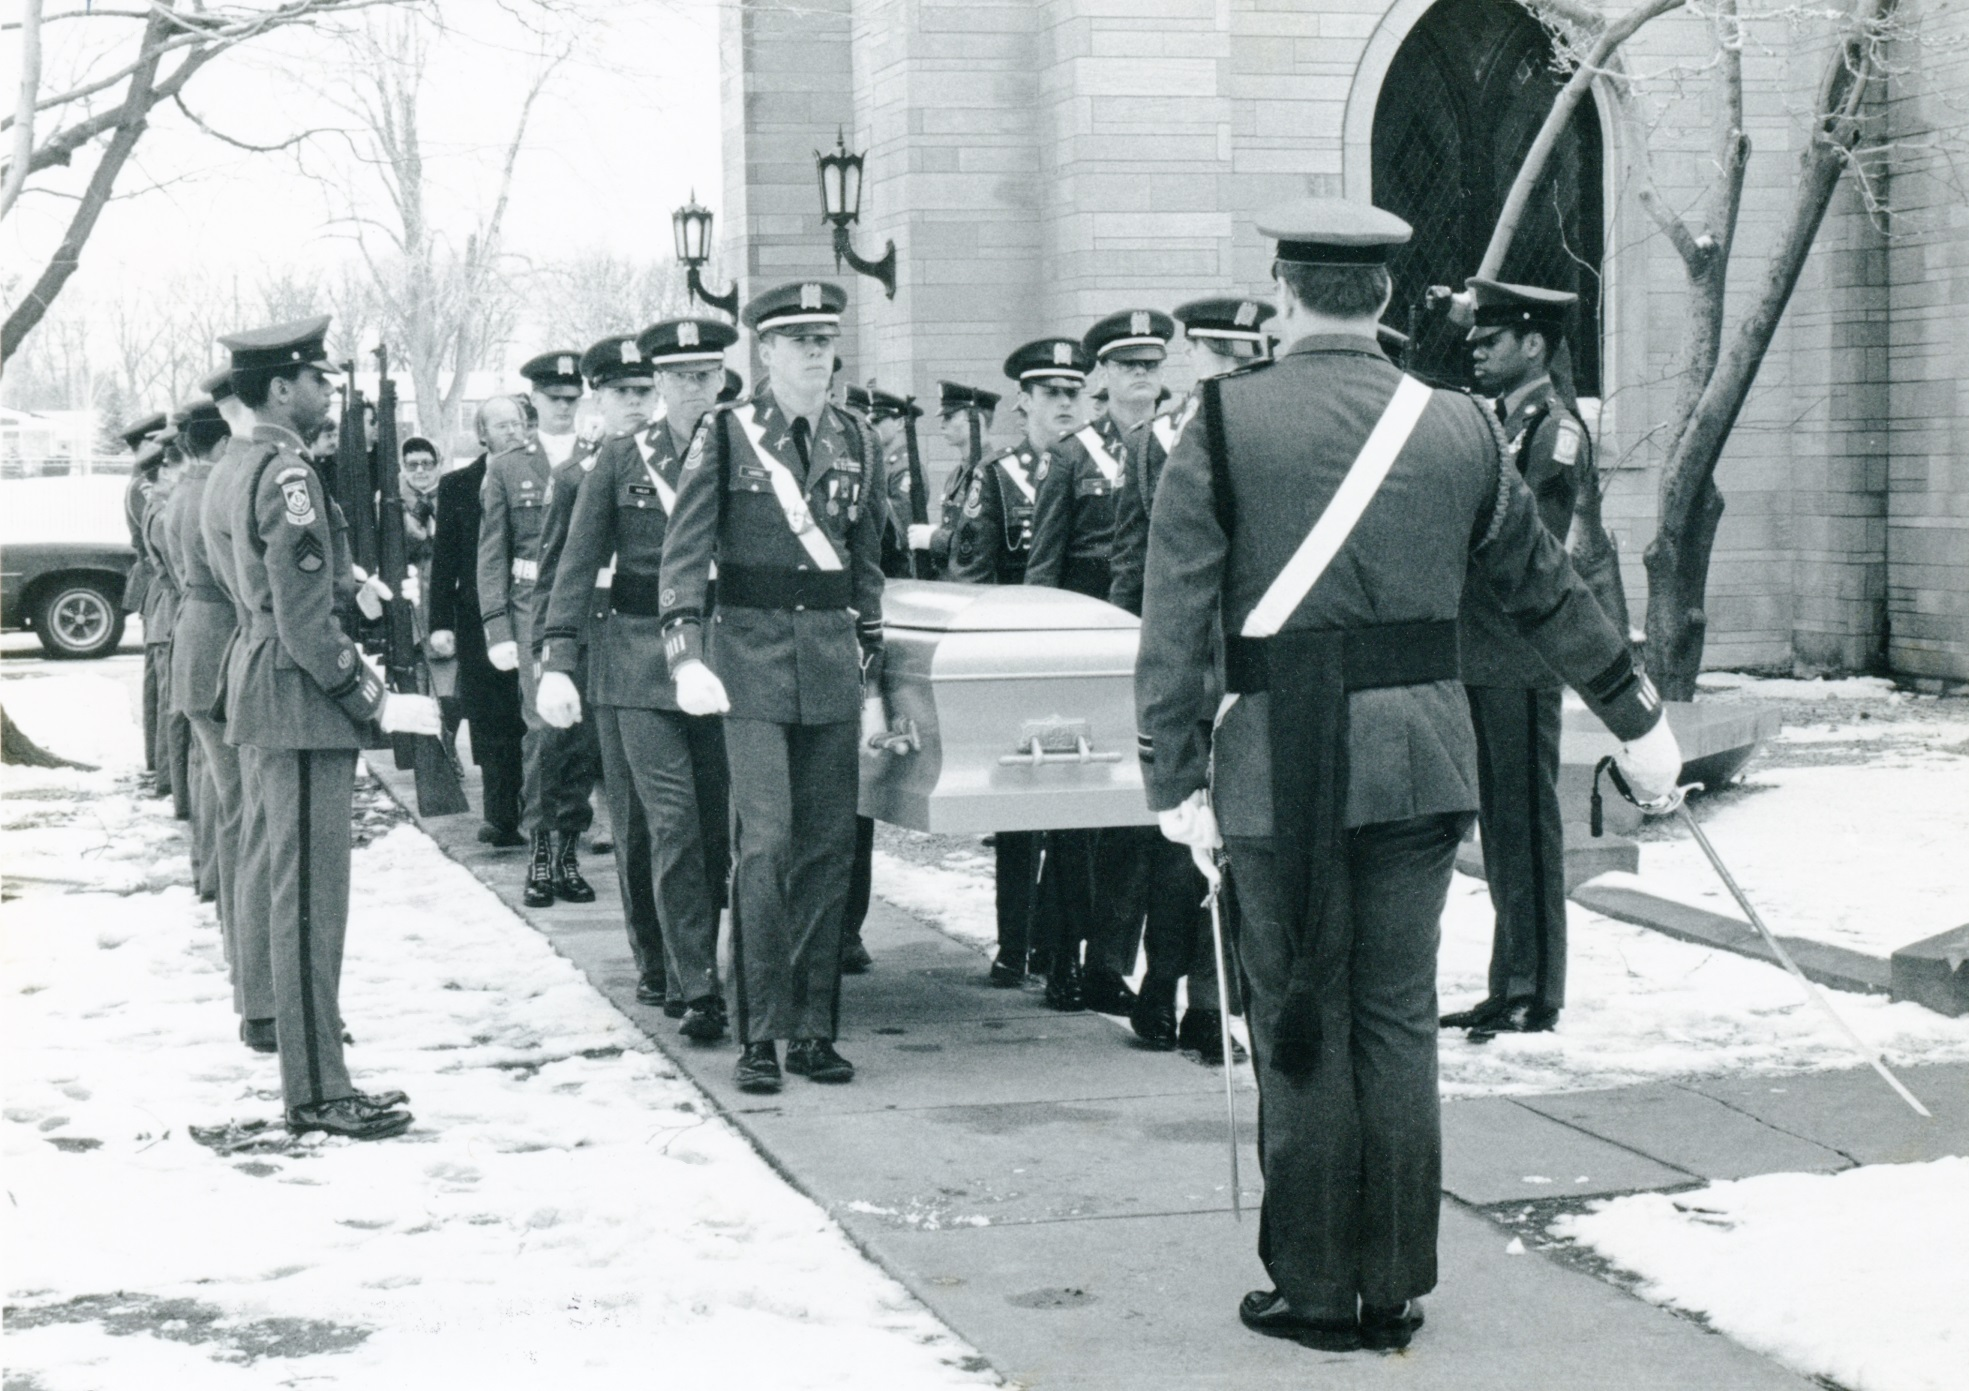 Cadet pallbearers carry the casket of Bishop Walter Conrad Klein into the Crypt for burial